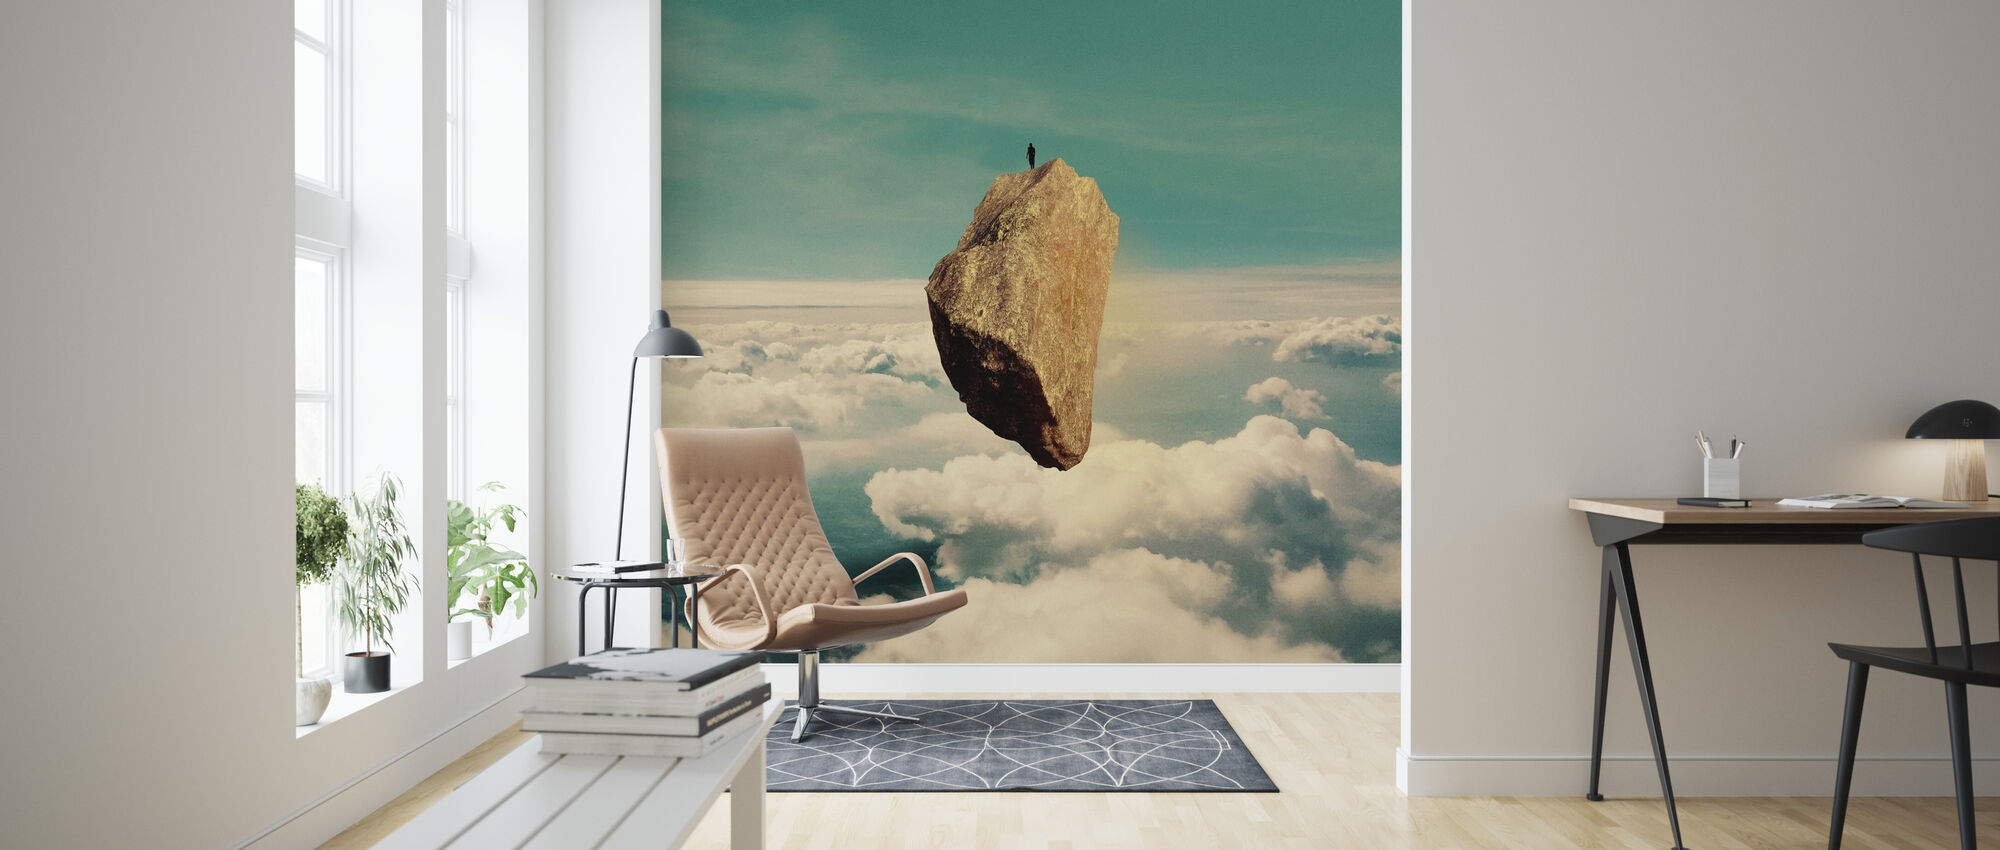 The Island - Wallpaper - Living Room